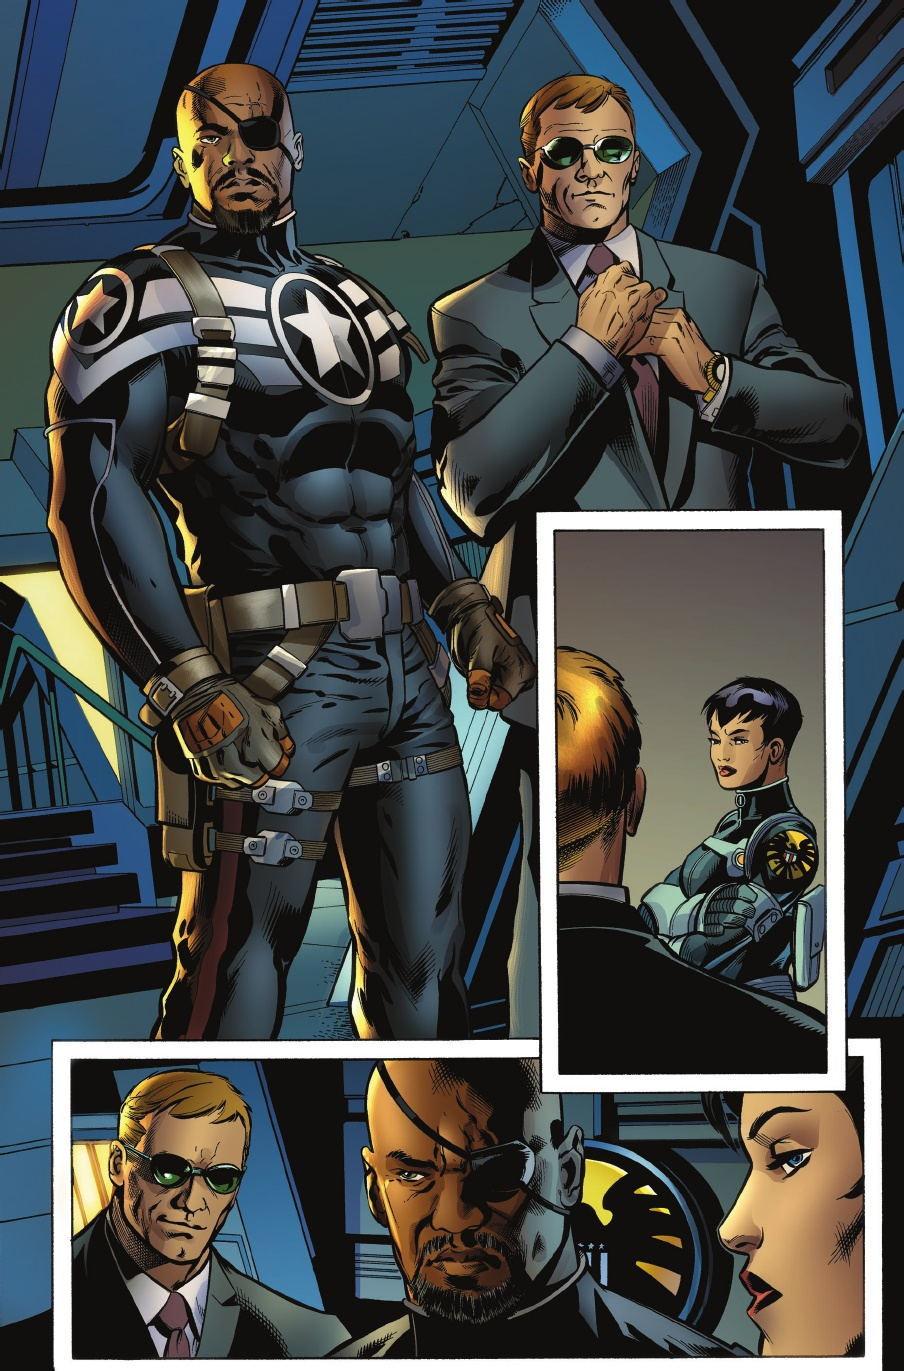 Nick Fury Jr. e Agente Coulson integrados ao universo Marvel